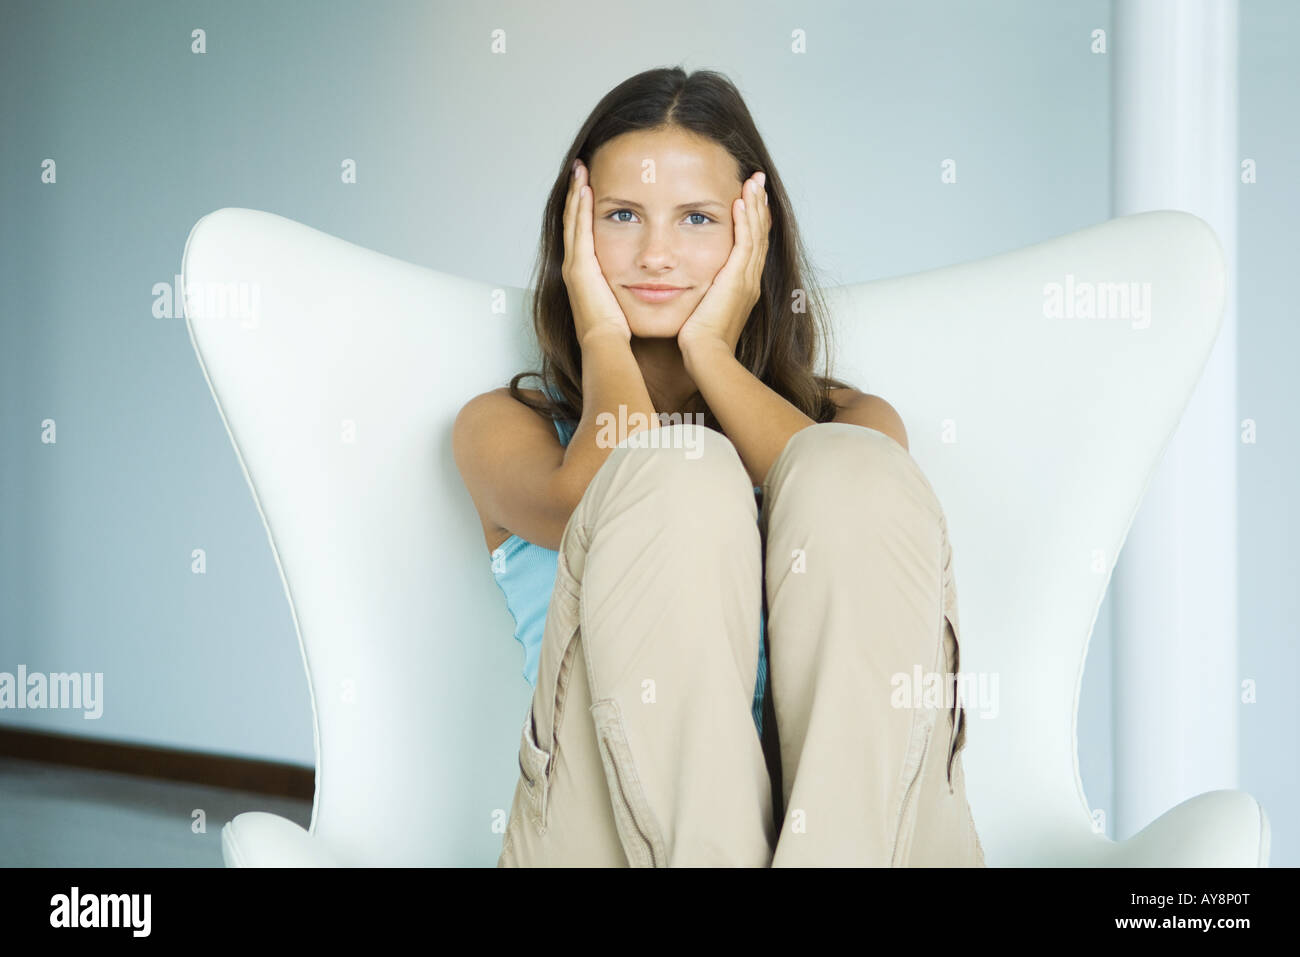 Teen girl sitting in arm chair, holding head in hands, looking at camera, three quarter length - Stock Image